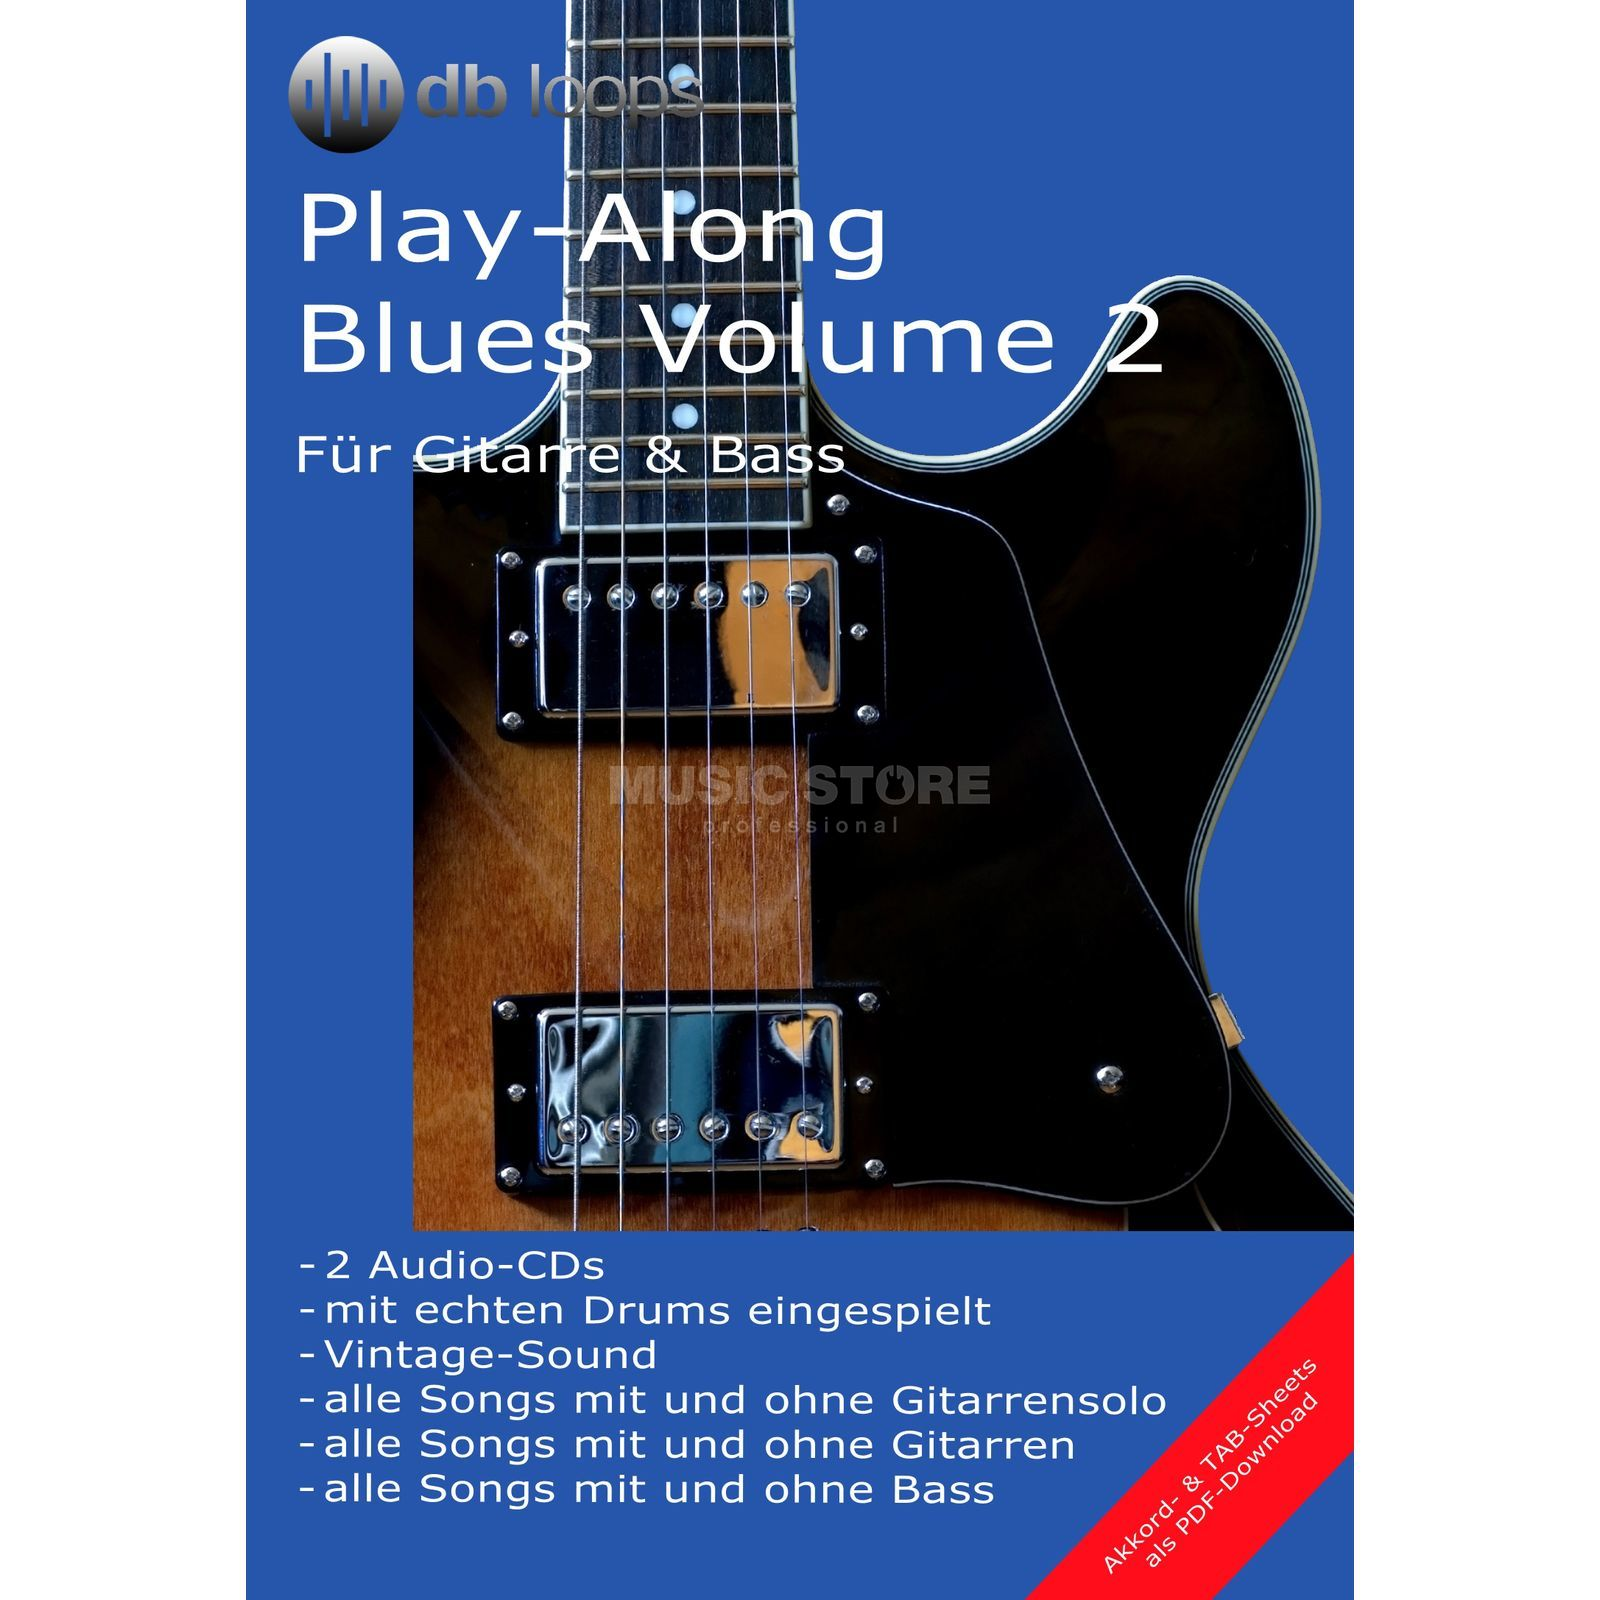 db loops Blues - Volume 2 Gitarre Playalong Produktbild